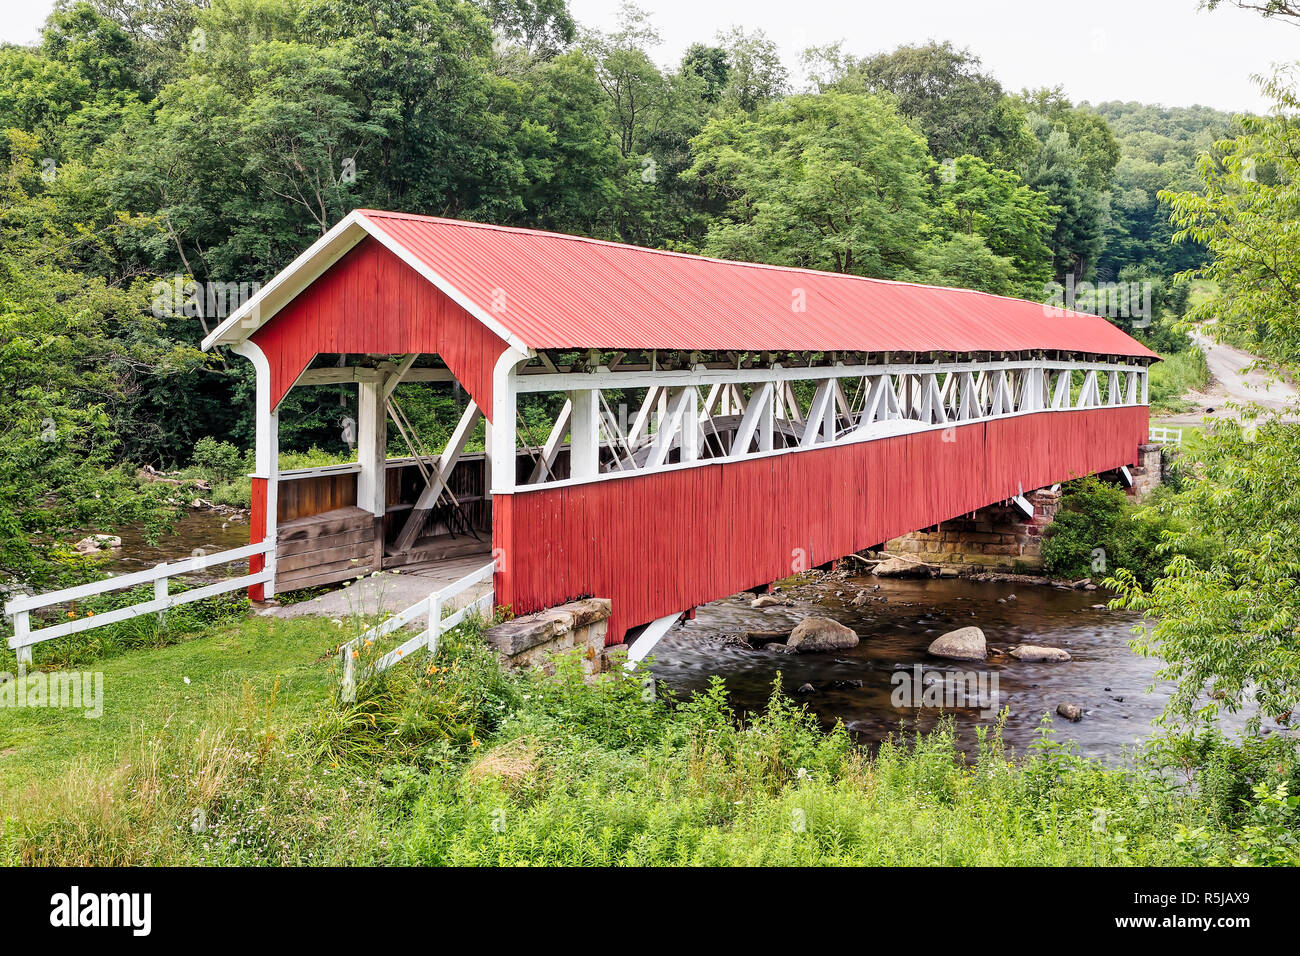 The historic red Barronvale Covered Bridge crosses Laurel Hill Creek in rural Somerset County, Pennsylvania. Stock Photo